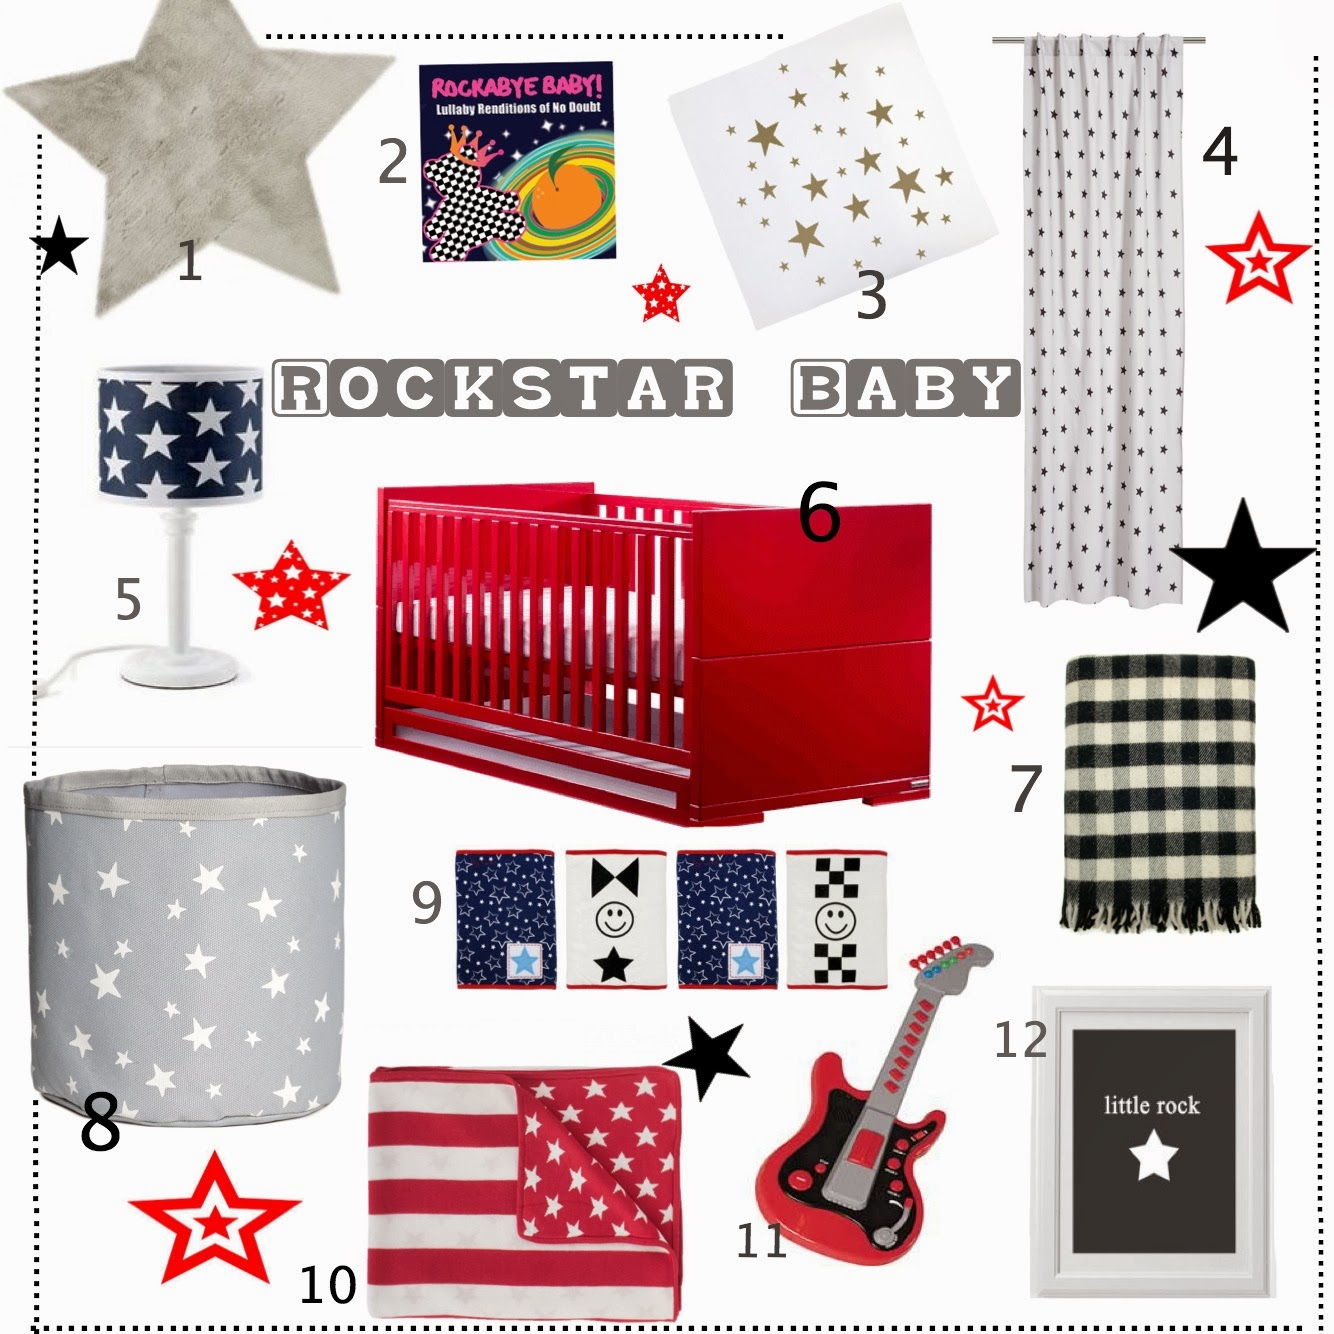 mamasVIB | V. I. BUYS: A rockstar nursery fit for Gwen Stefani's third baby boy Apollo…from £1.99, baby bedroom, celebrity baby, get the look, Gwen Stefani, nursery buys, nursery looks, nursery style, rockstar baby, V. I. BUYS,